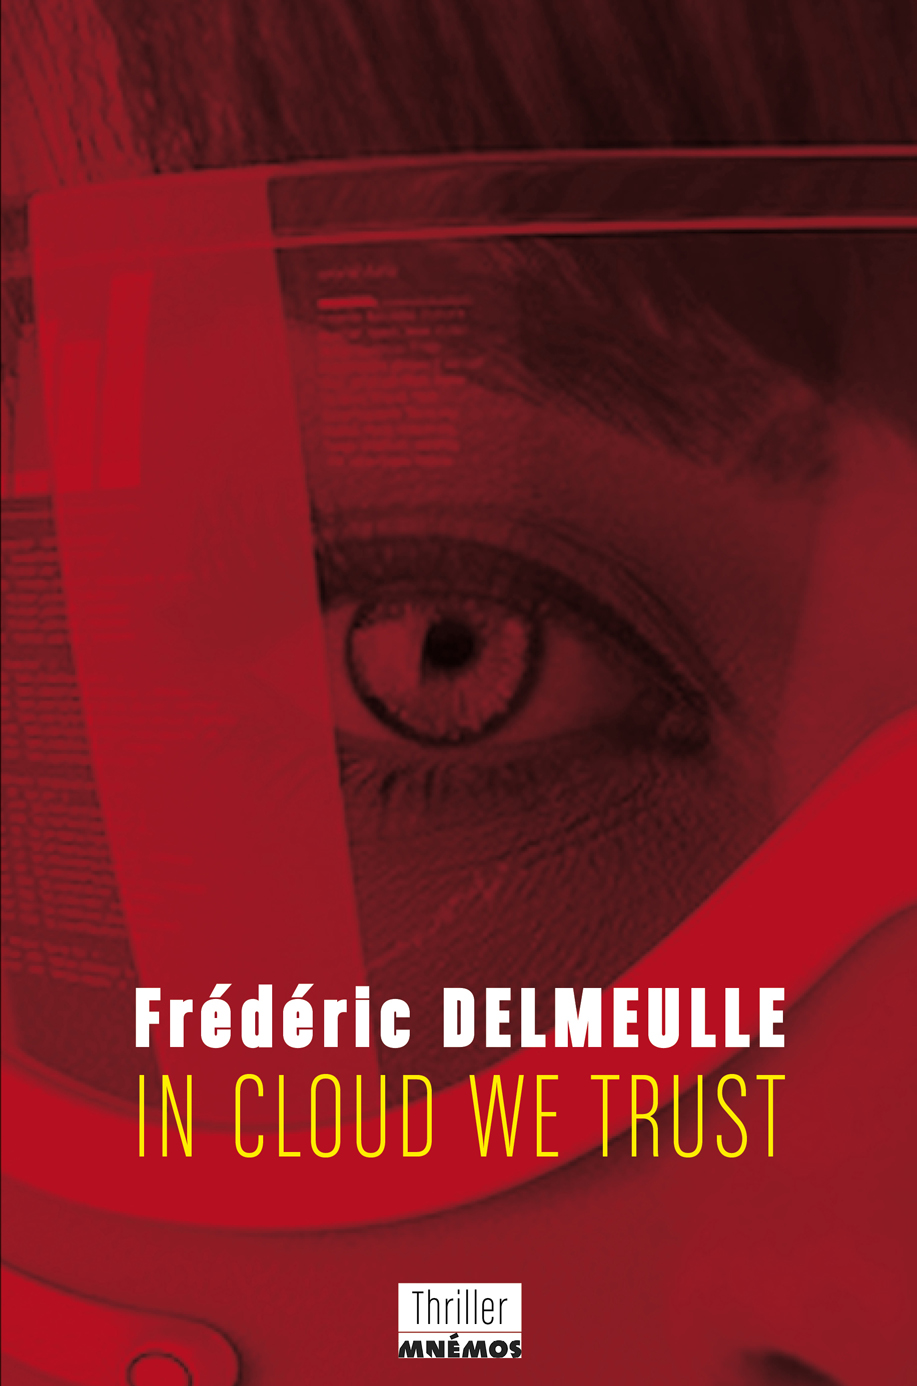 http://www.labibliodegaby.fr/2015/04/in-cloud-we-trust-frederic-delmeulle.html